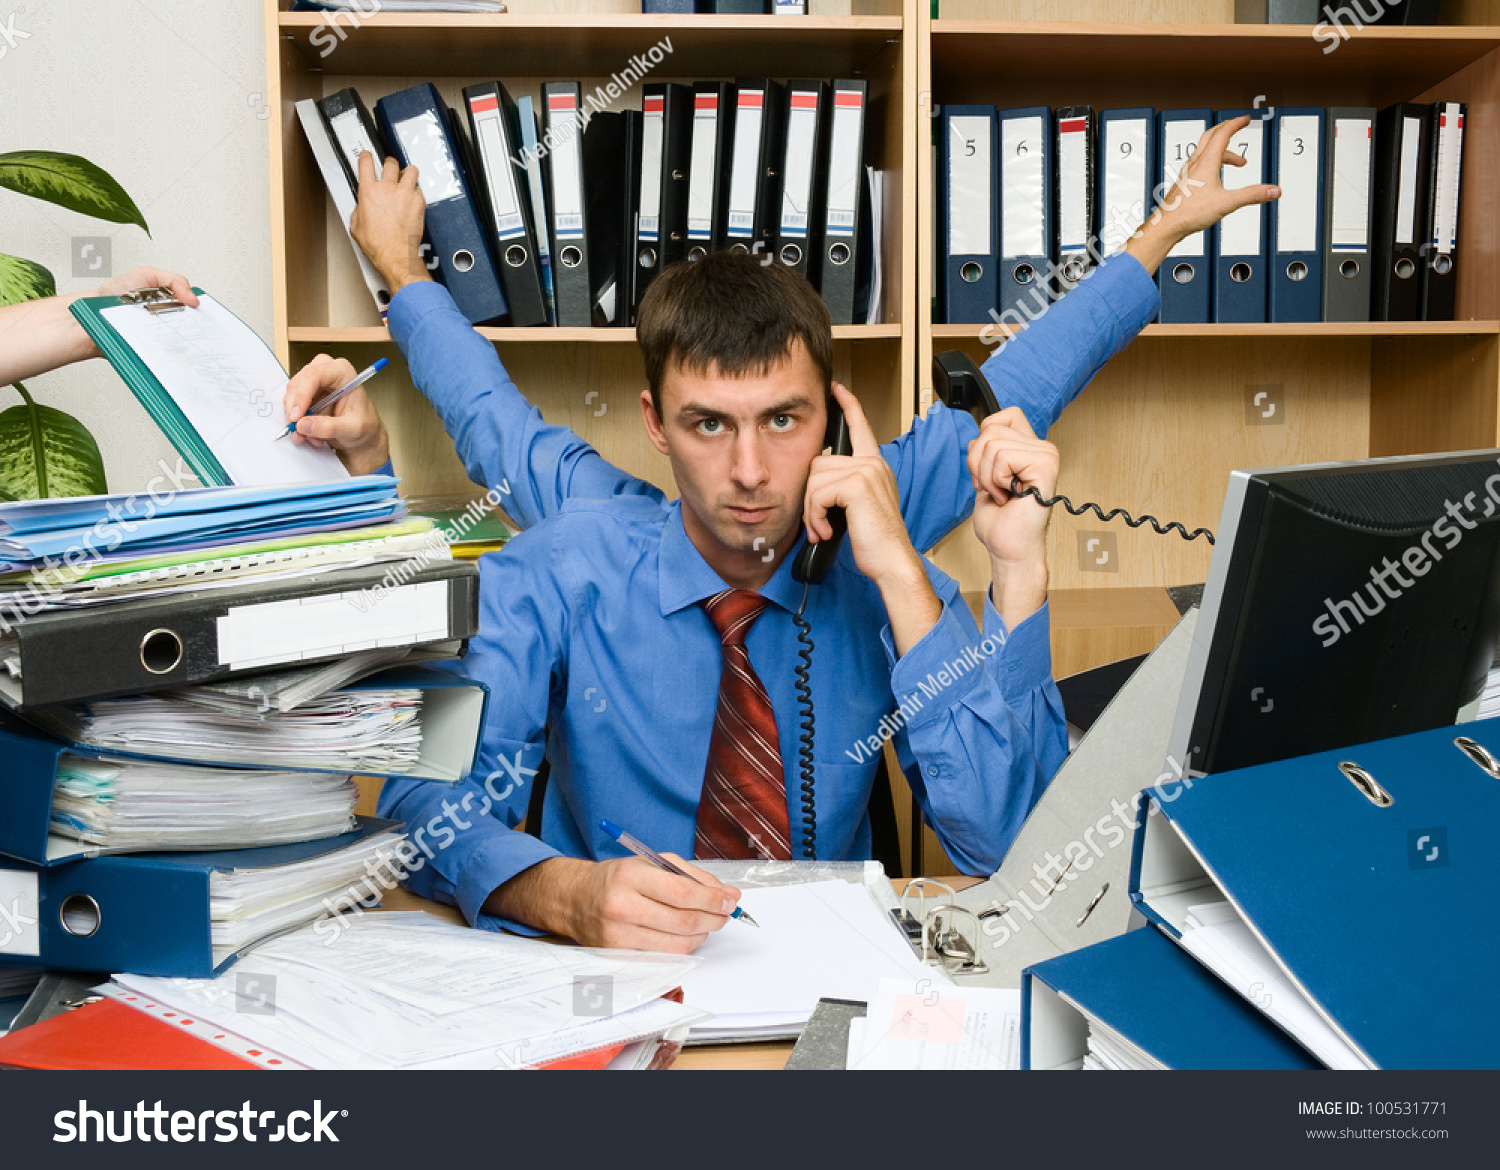 This Is A Very Active And The Executive Office Worker. He Has Very Hard Work. Stock Photo 100531771 : Shutterstock